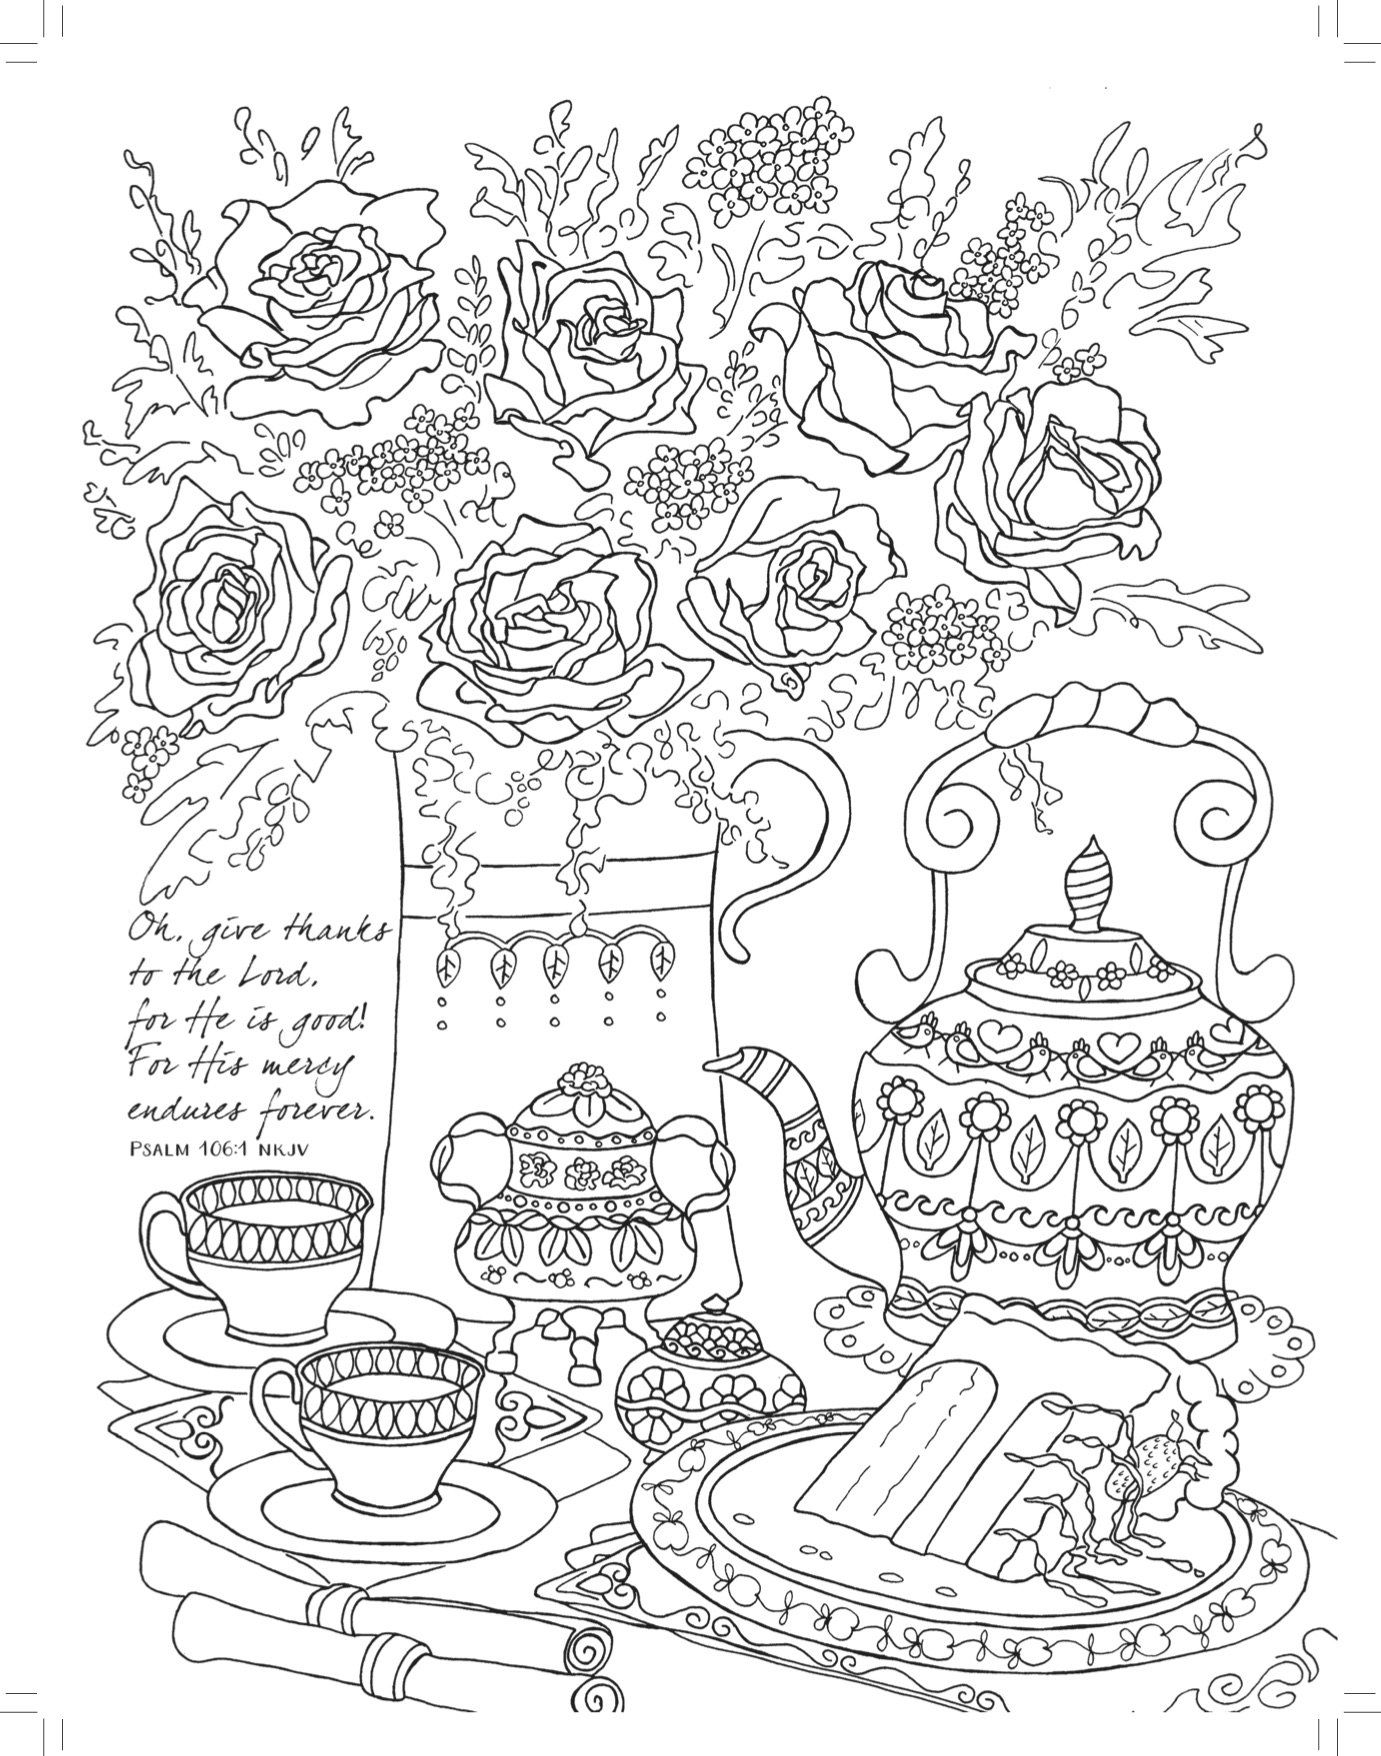 Tea For Two: Coloring Friendship (majestic